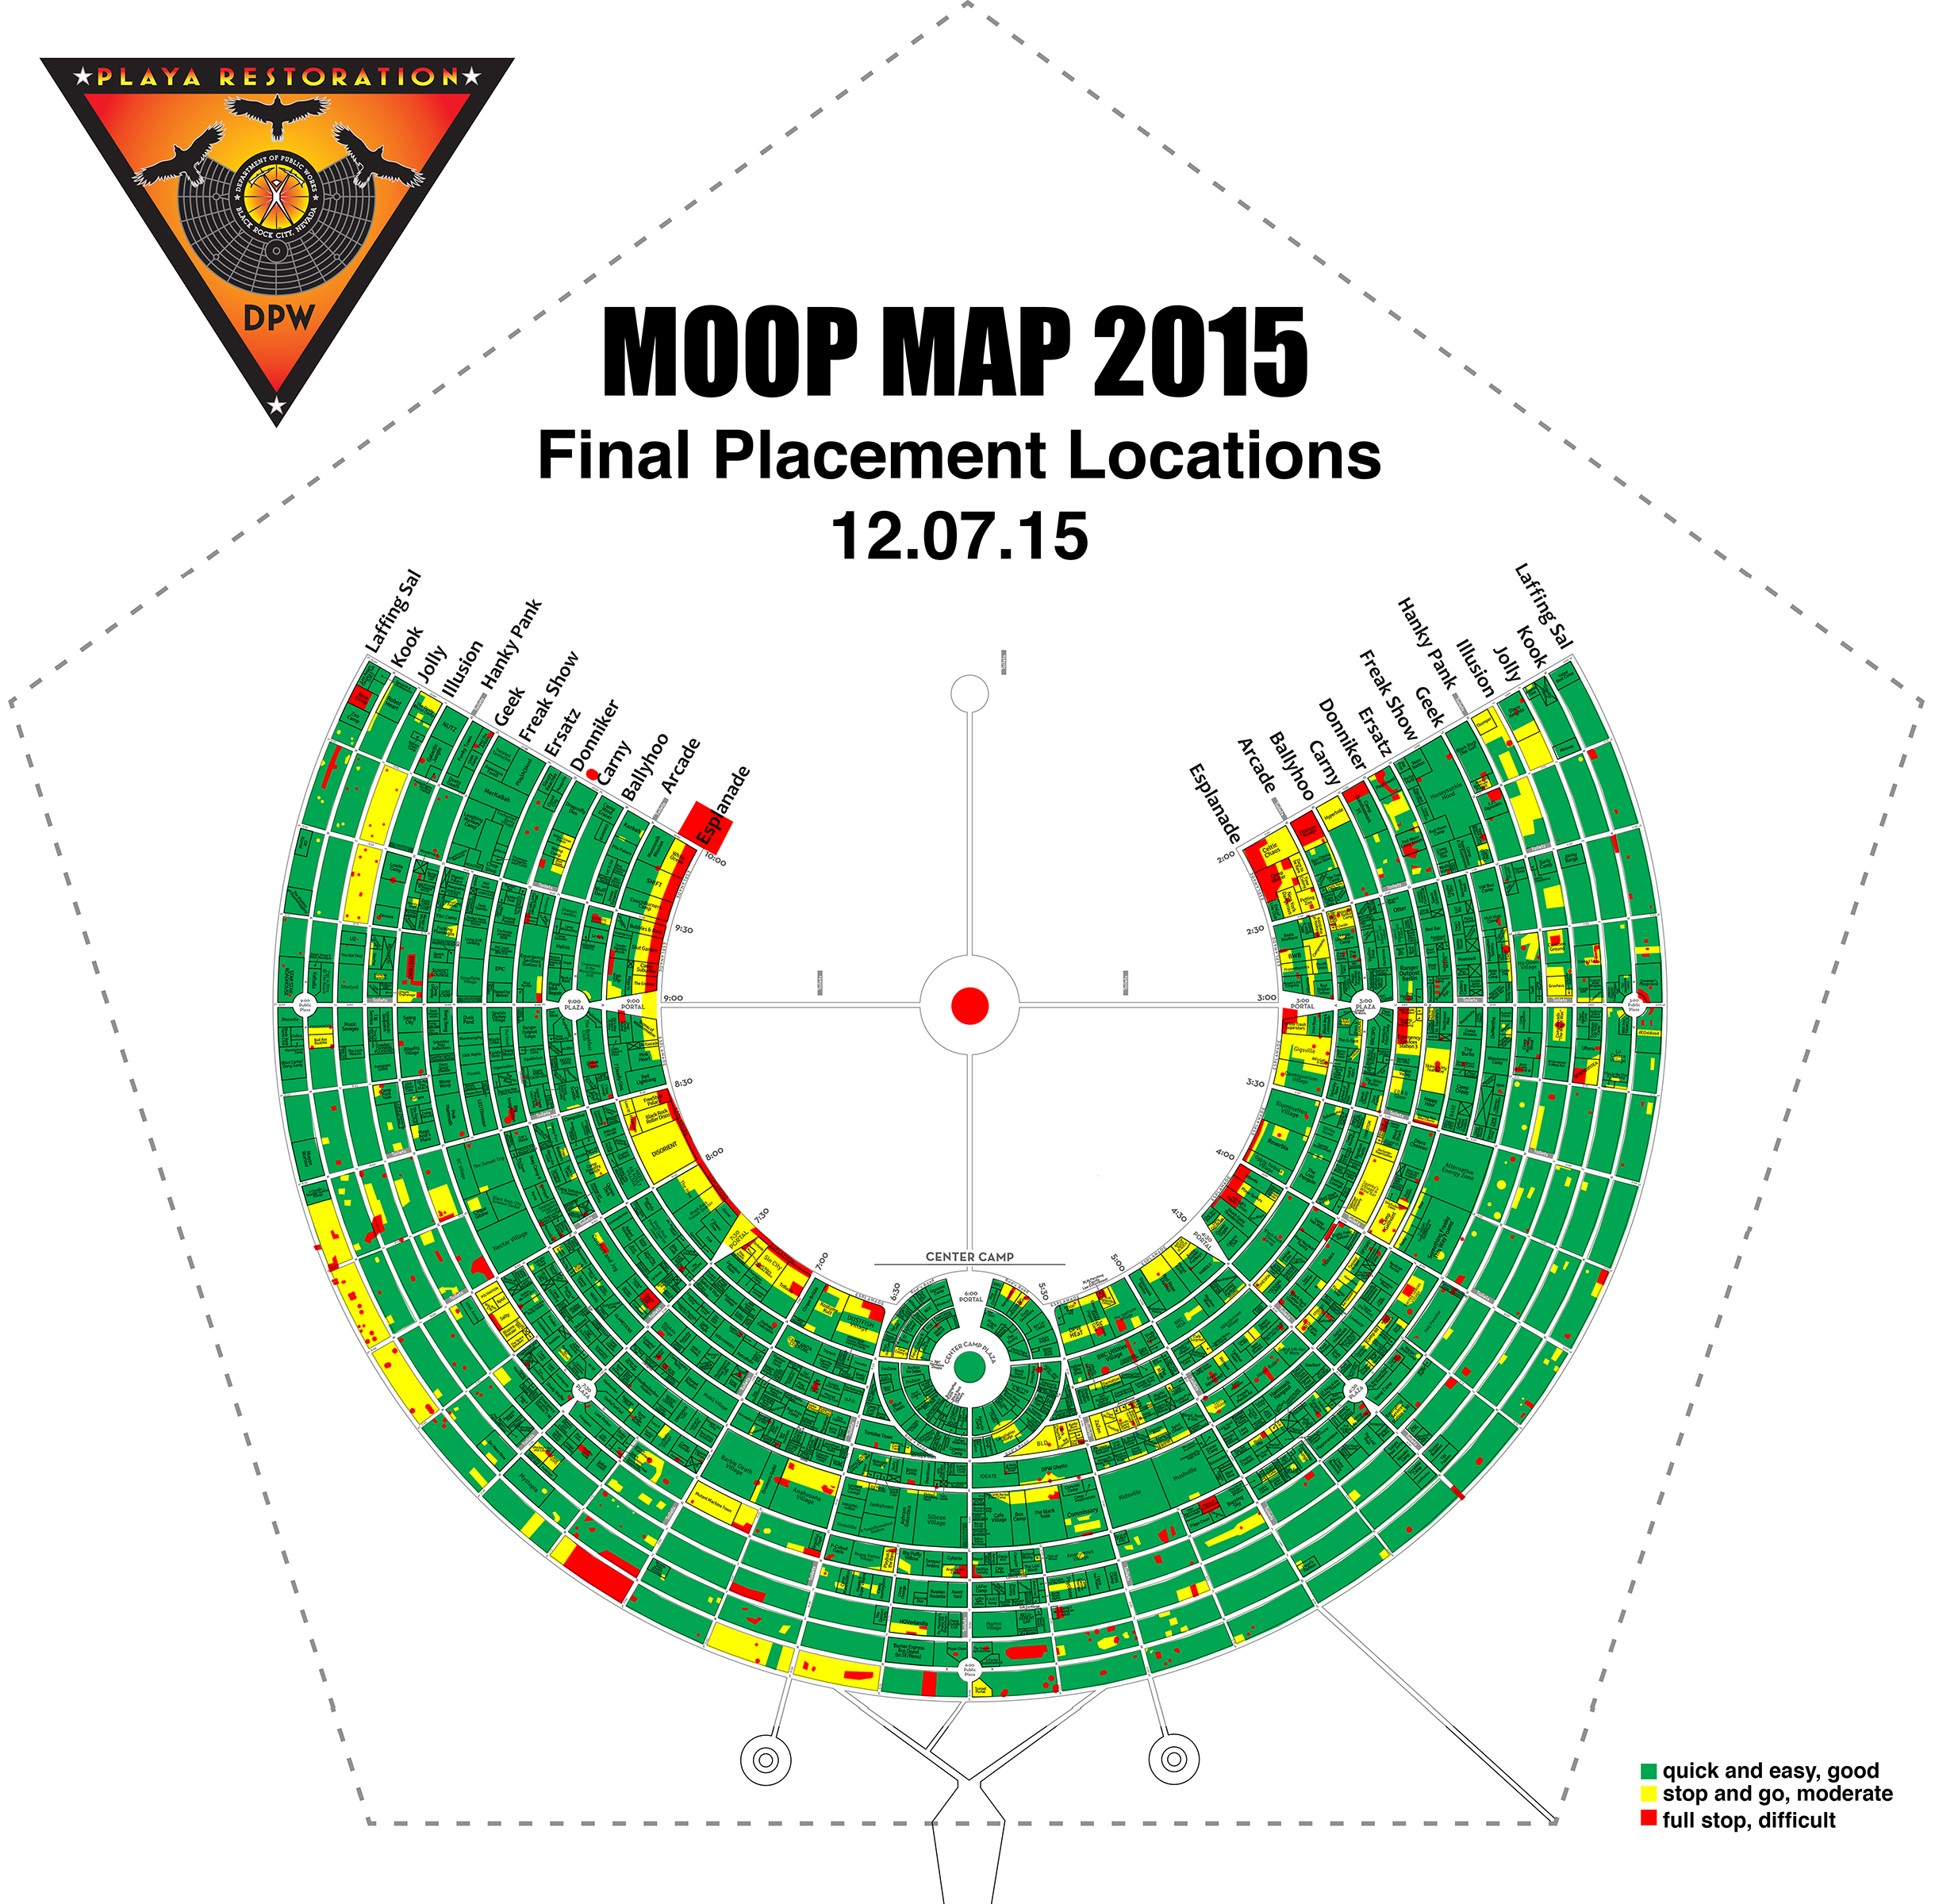 Moop Map 2015_Final Placement_8x8_300 dpi